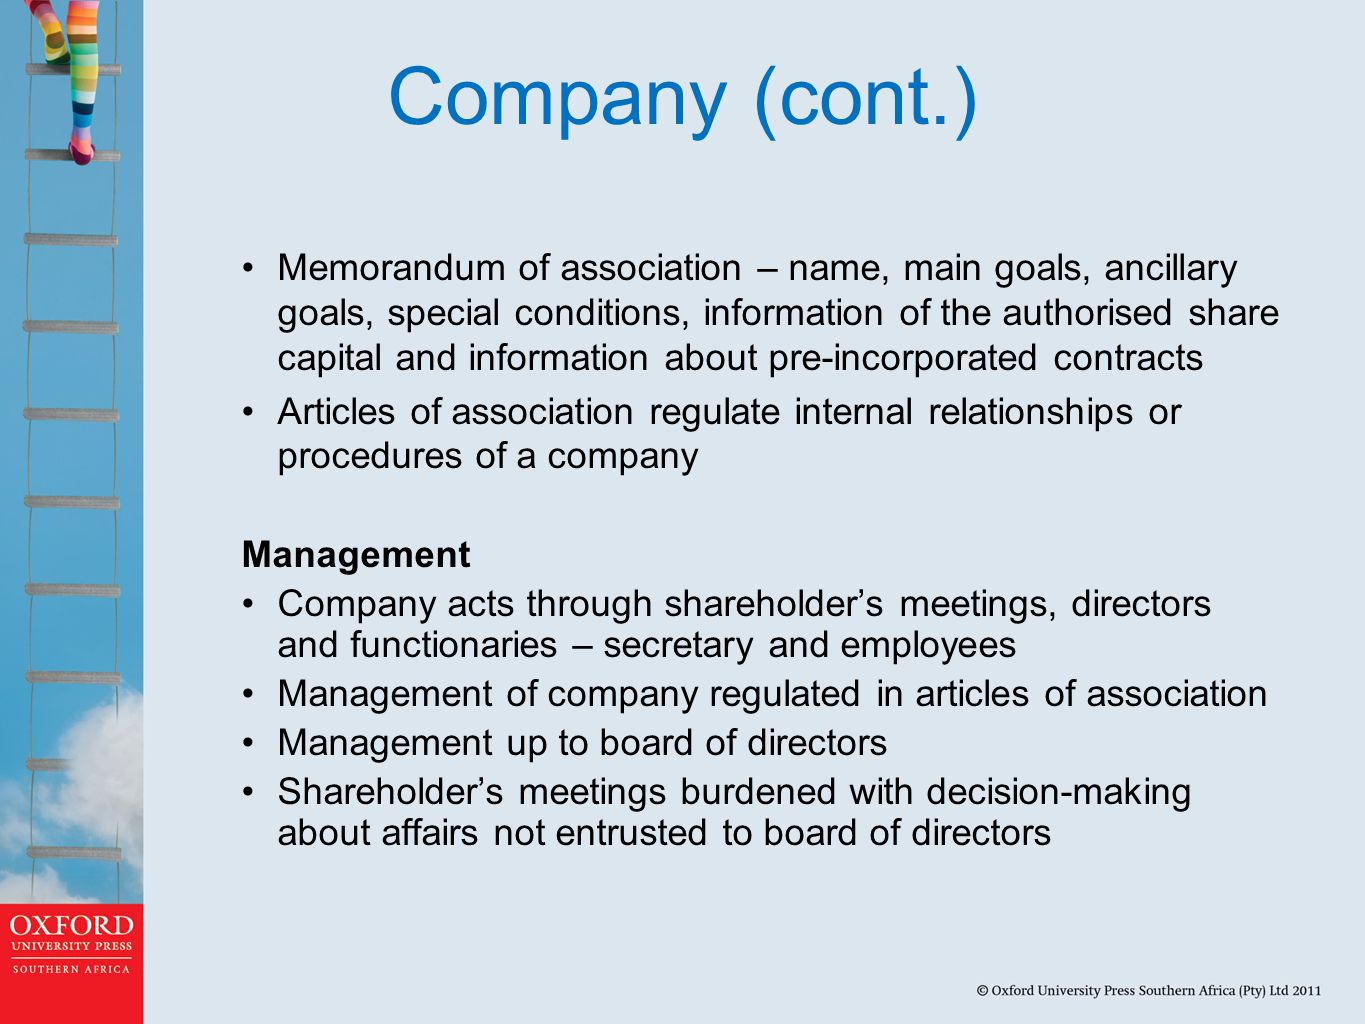 Company (cont.) Memorandum of association – name, main goals, ancillary goals, special conditions, information of the authorised share capital and information about pre-incorporated contracts Articles of association regulate internal relationships or procedures of a company Management Company acts through shareholder's meetings, directors and functionaries – secretary and employees Management of company regulated in articles of association Management up to board of directors Shareholder's meetings burdened with decision-making about affairs not entrusted to board of directors